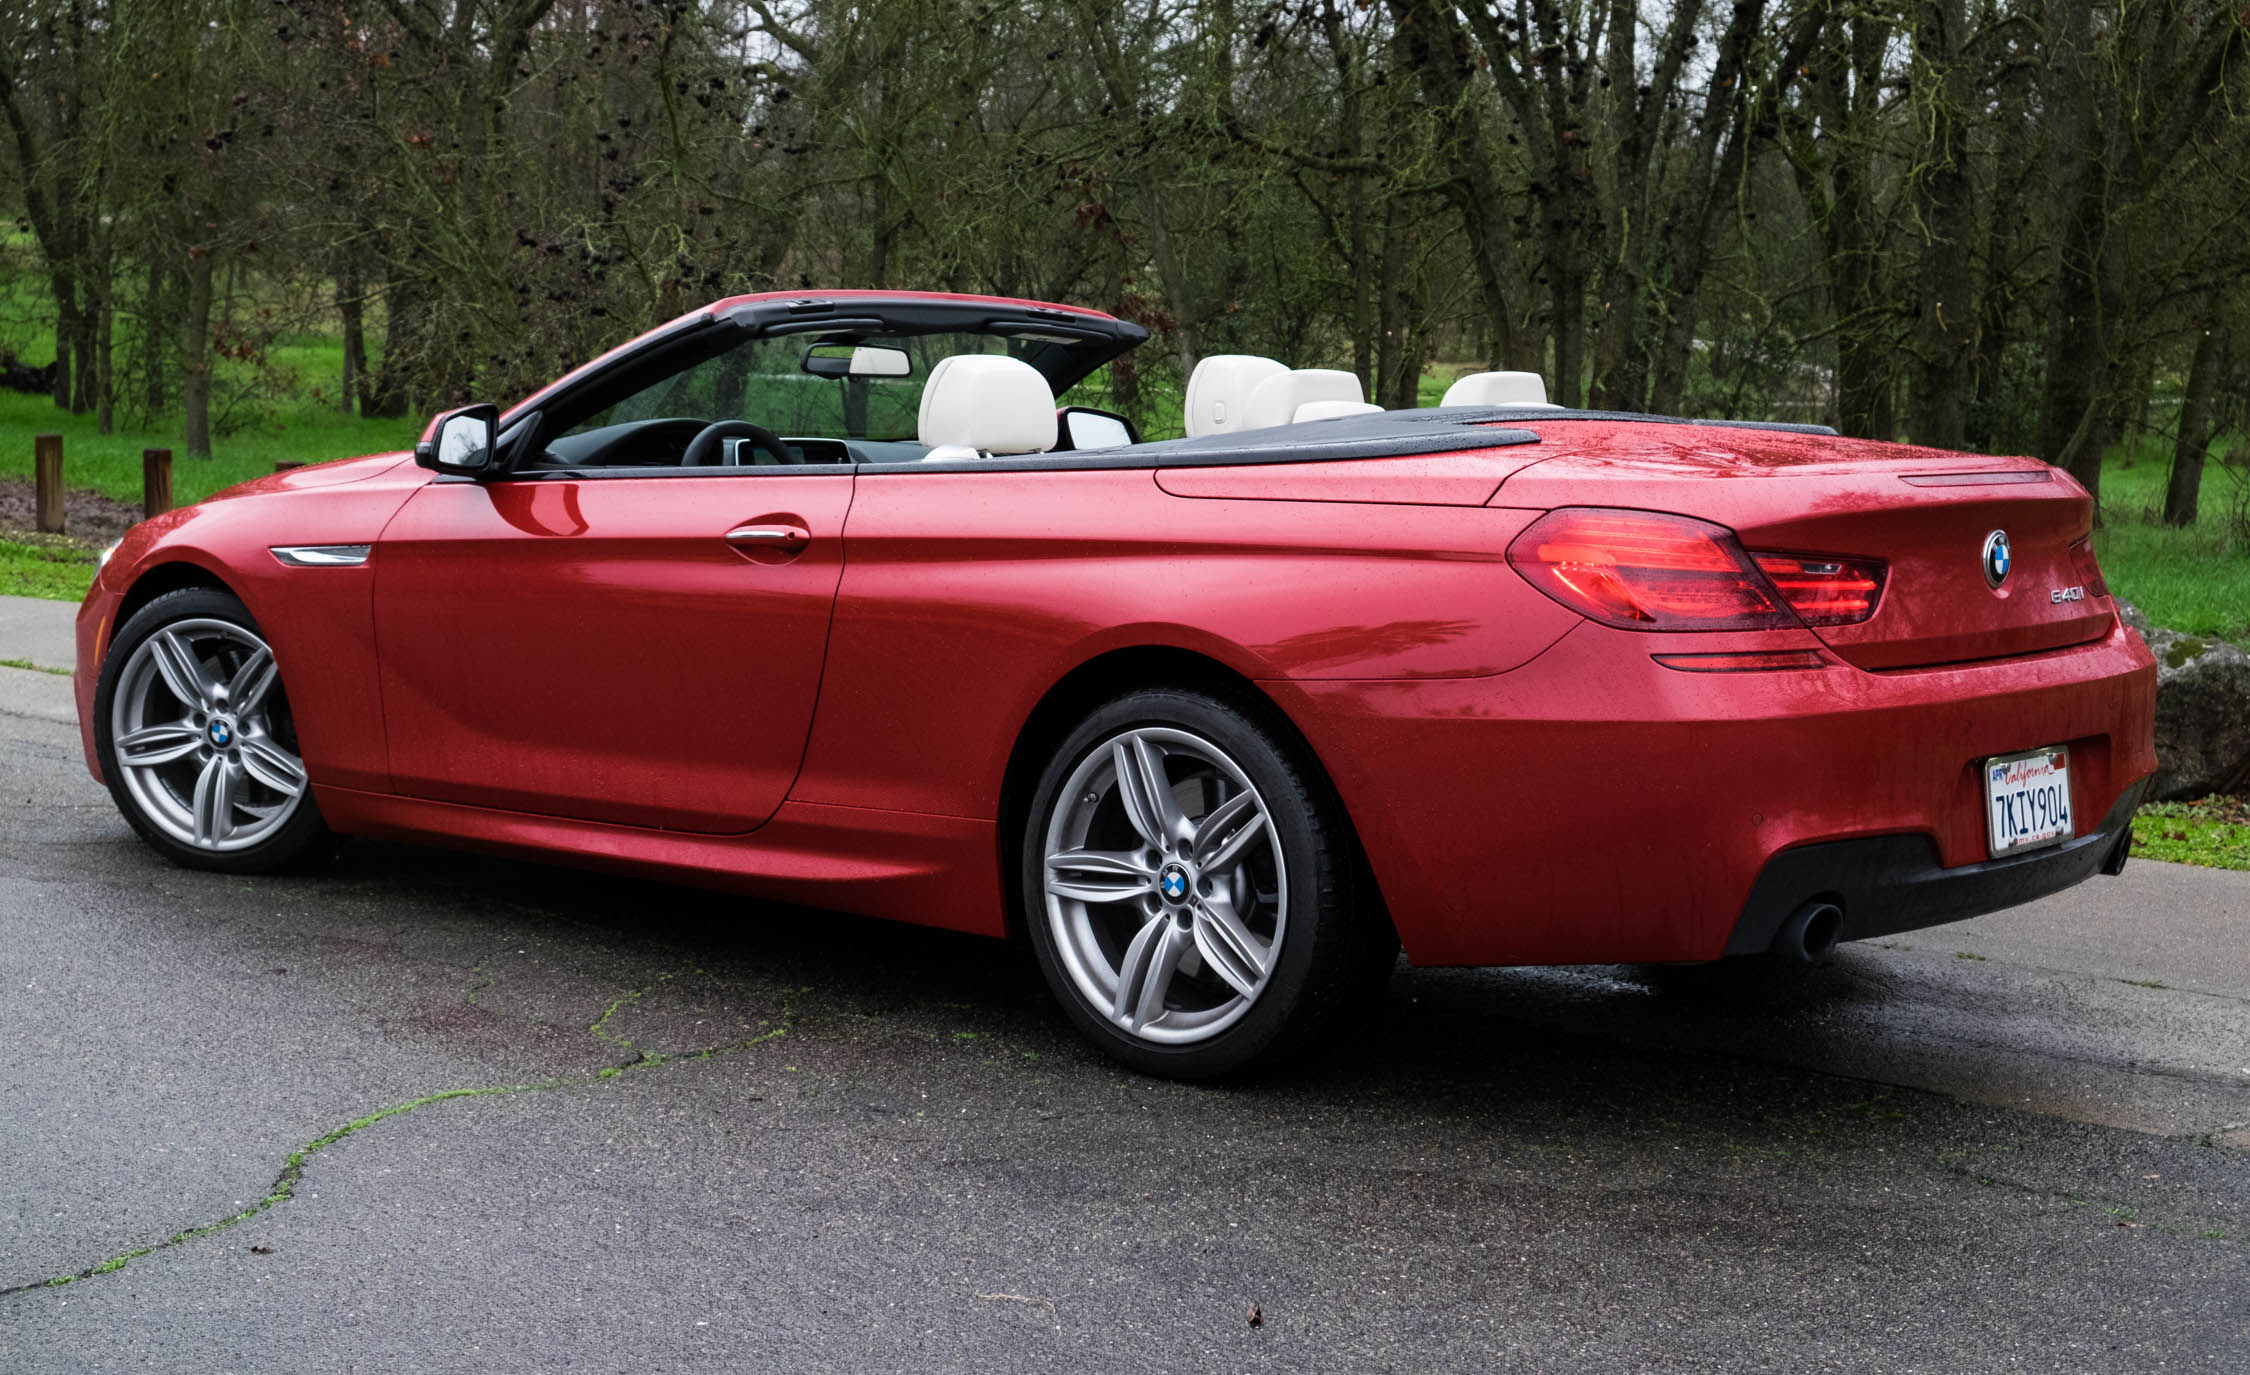 Bmw Xdrive 650i Bimmertoday Gallery I Xdrive Coupe Review